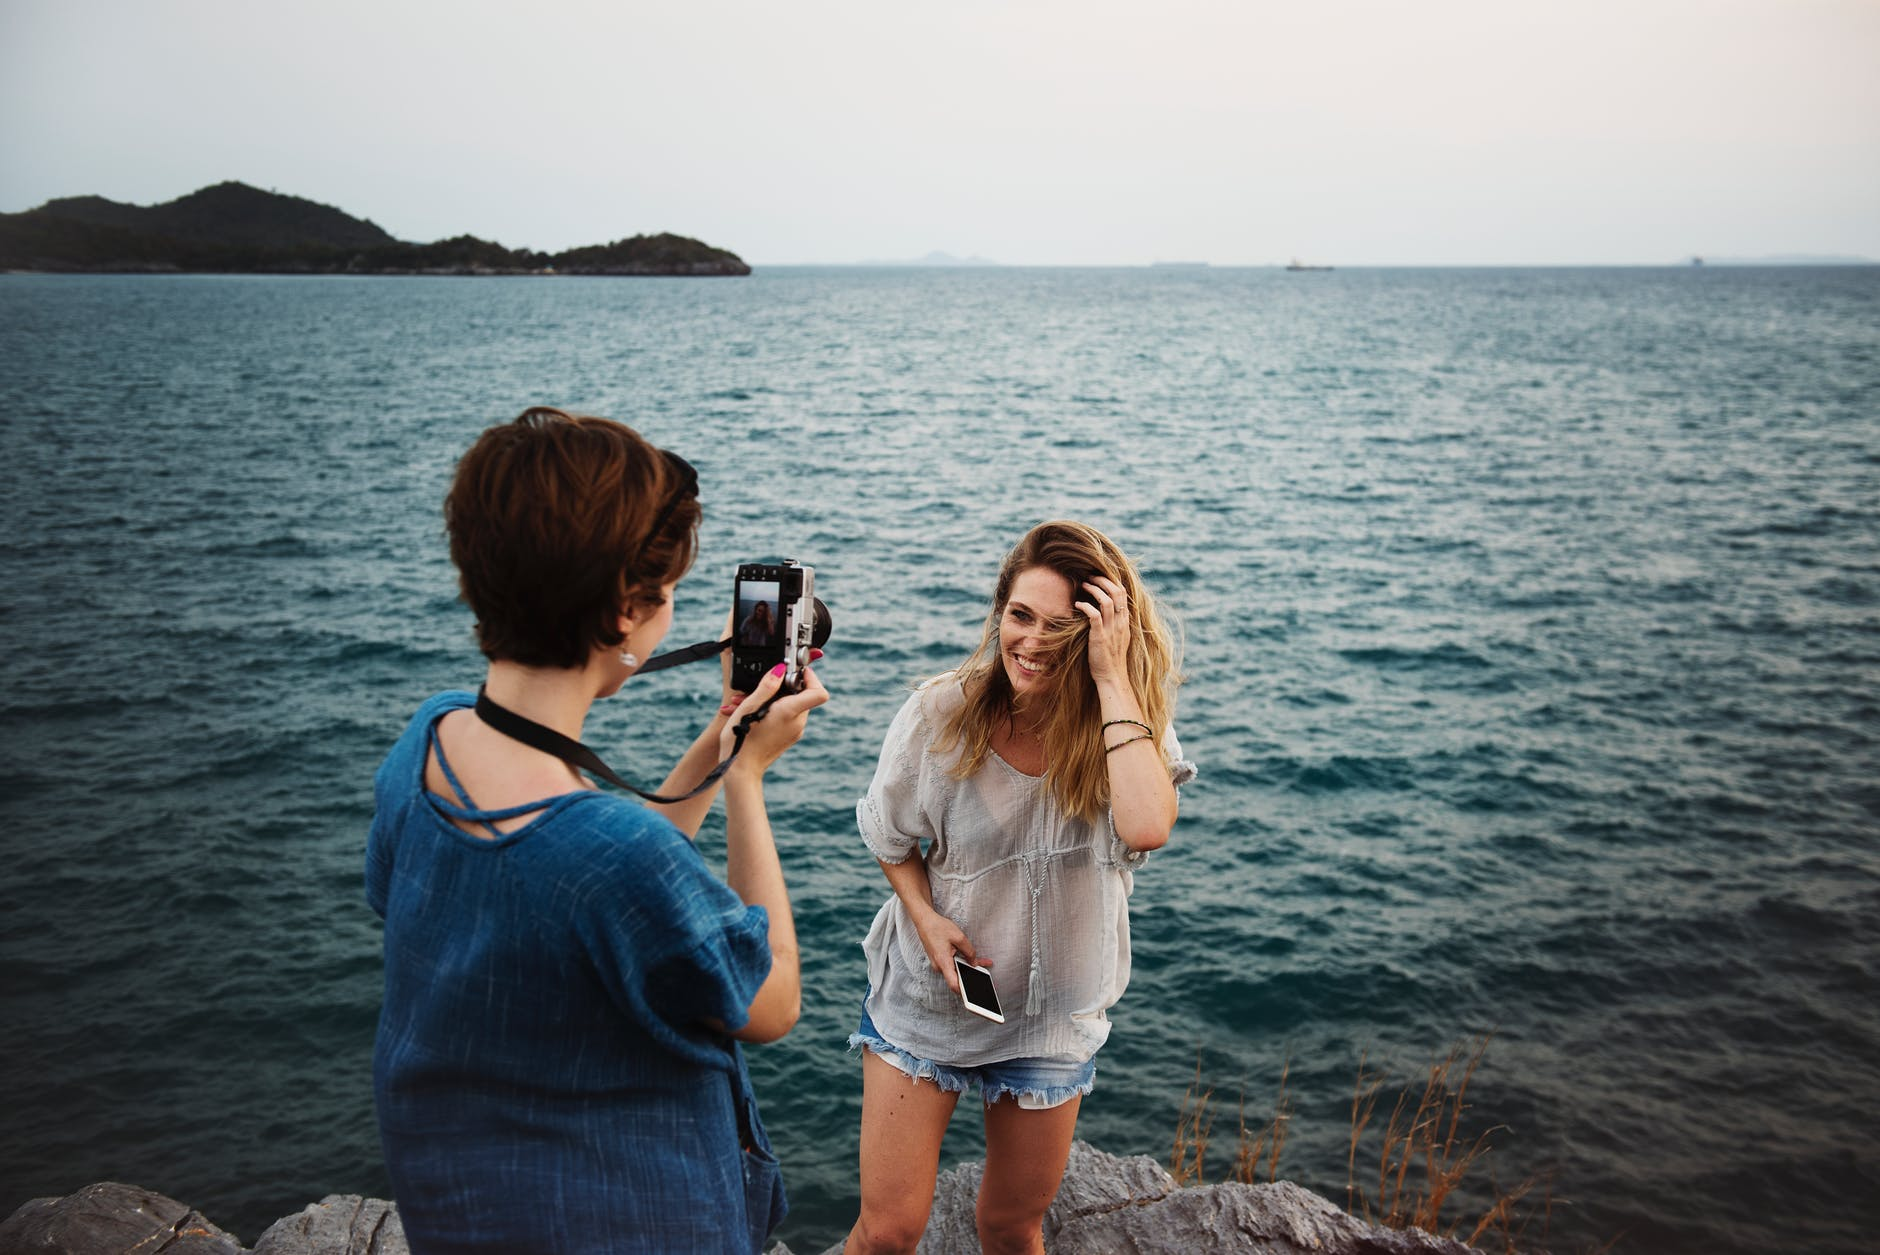 Woman with a waterproof camera taking pics